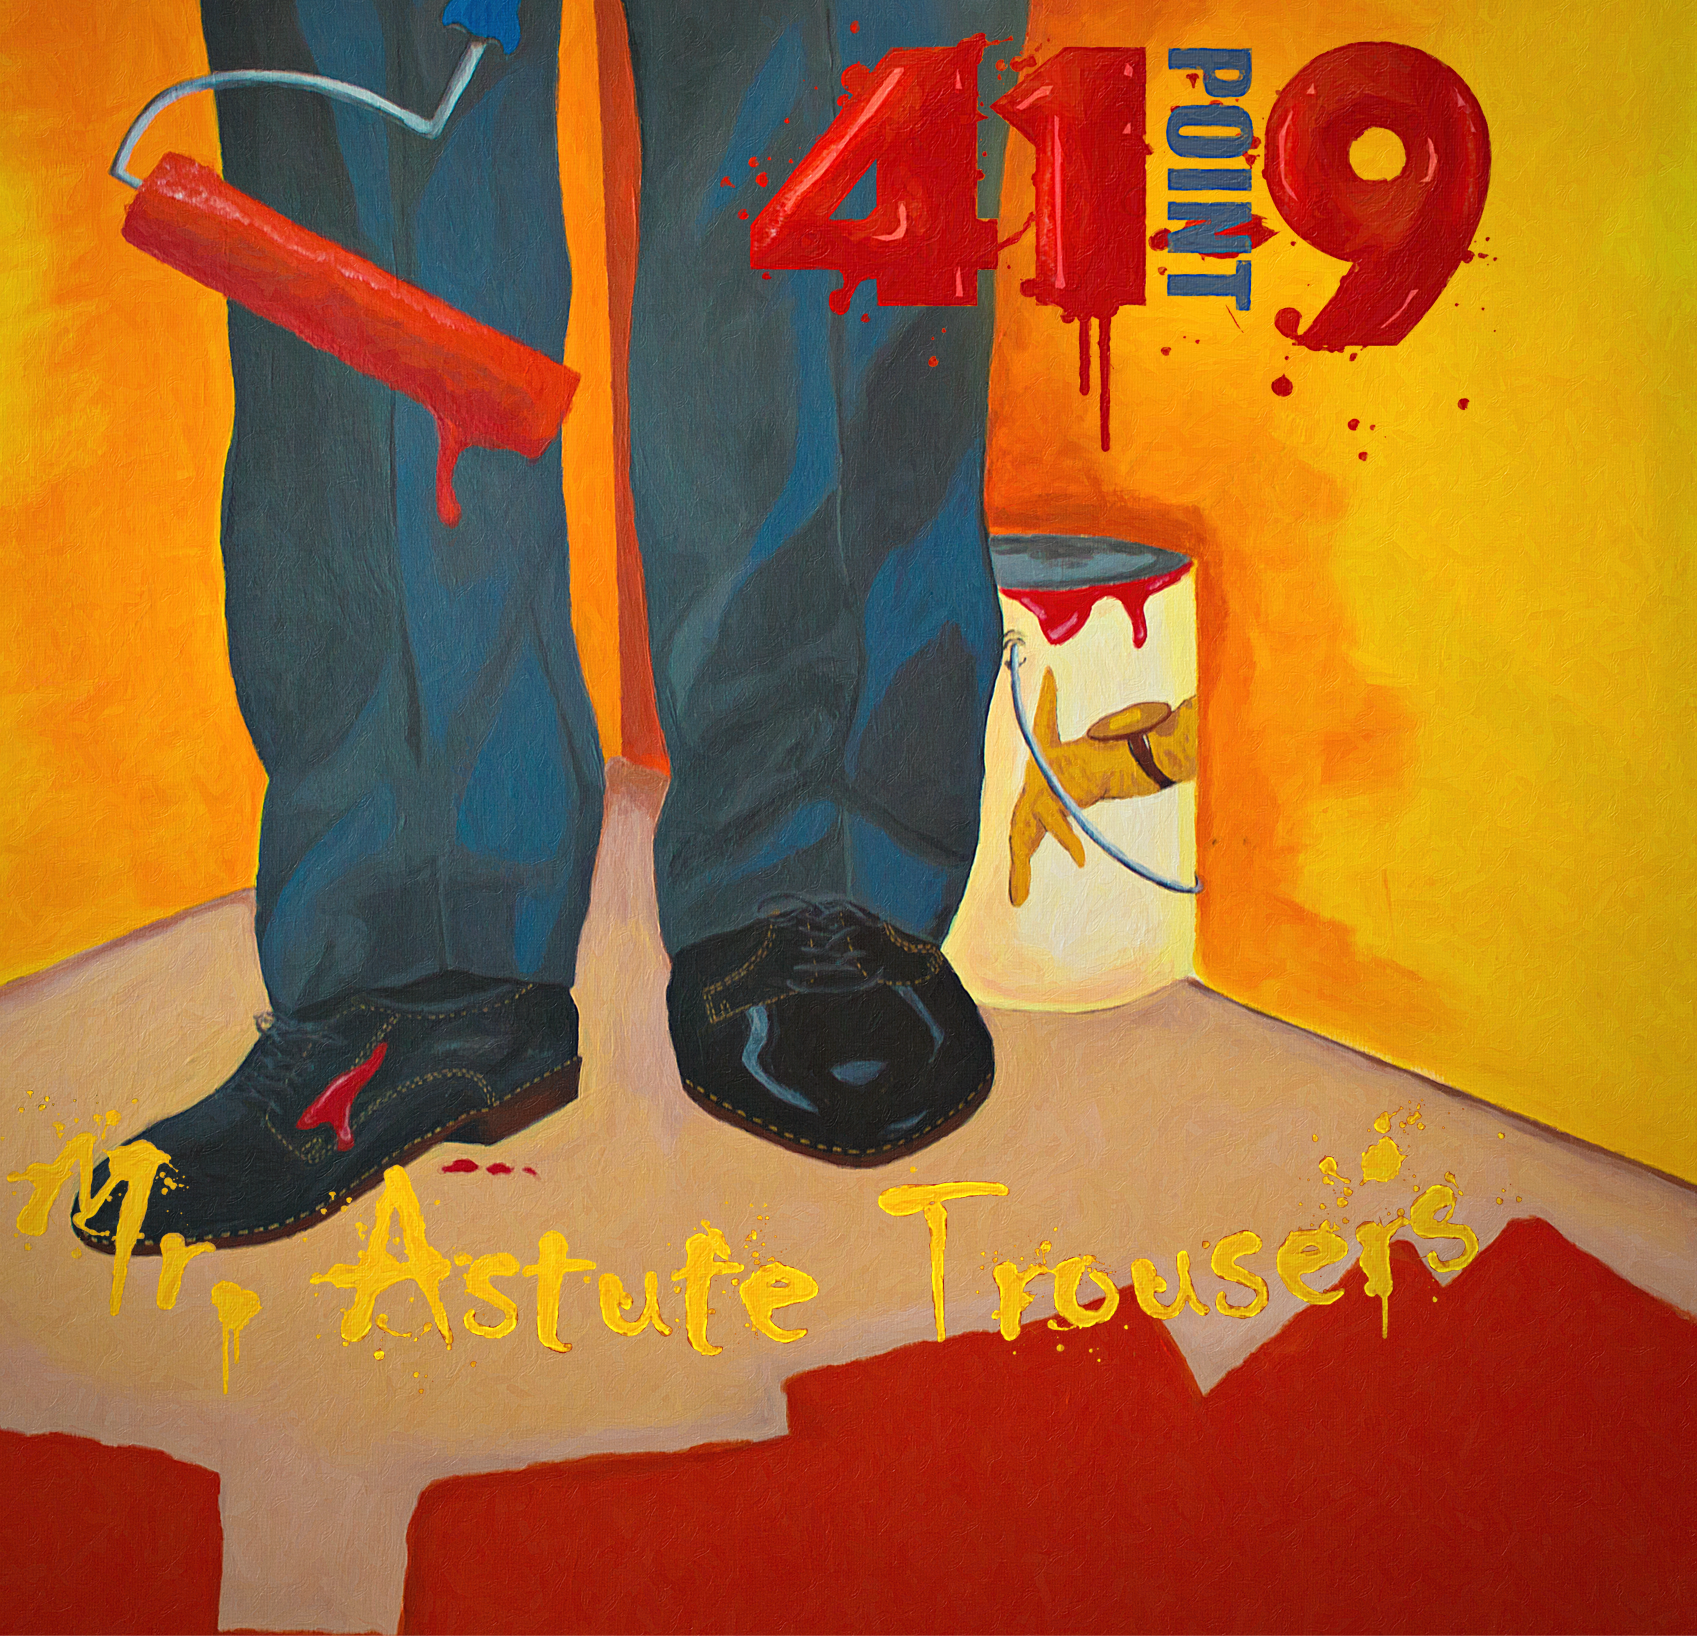 Mr Astute Trousers Album Cover.png